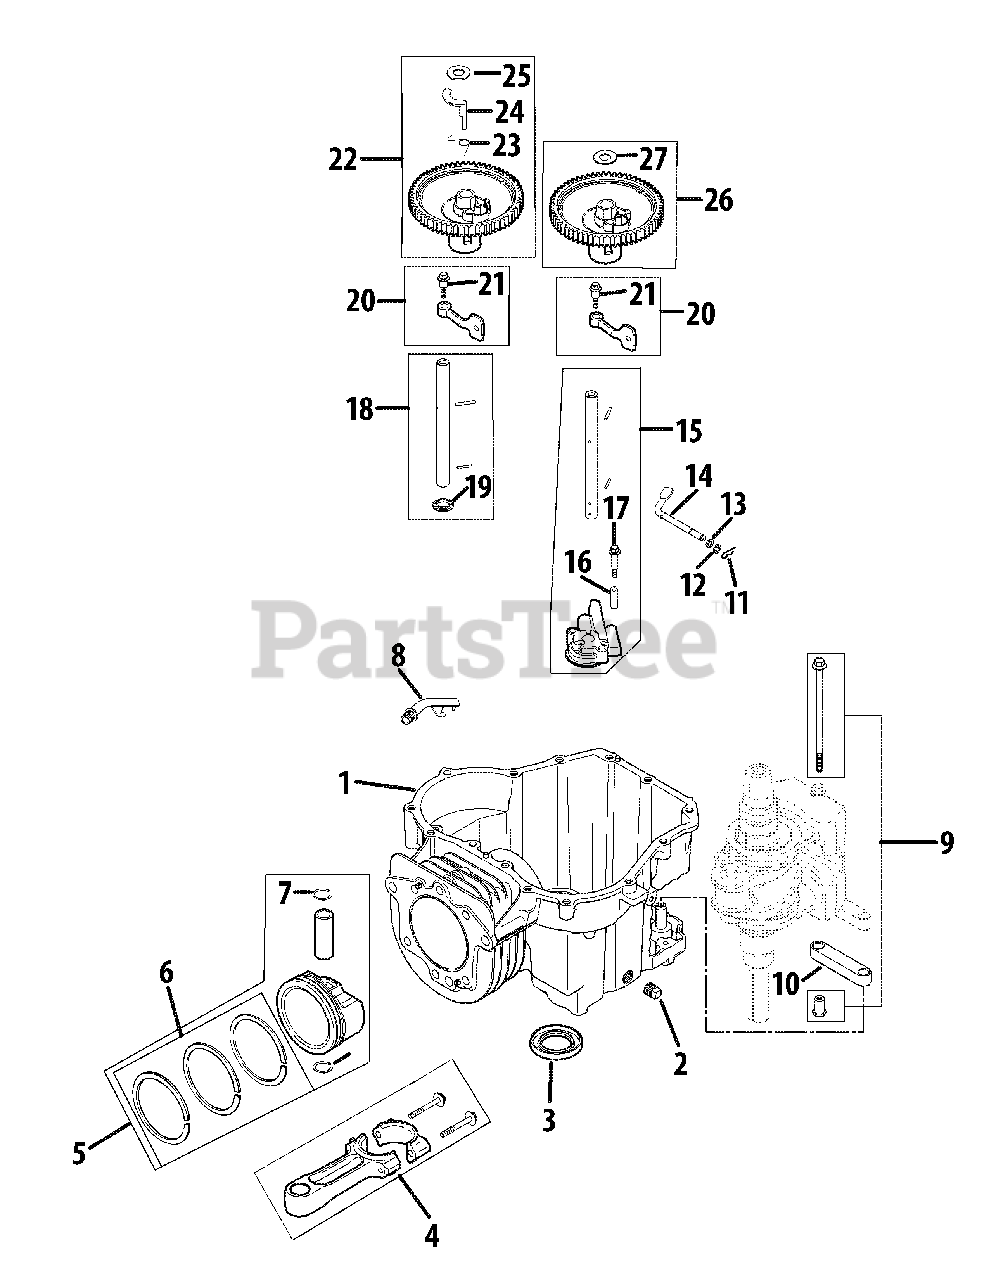 Cub Cadet Parts on the Engine Crankcase Diagram for RZT-42